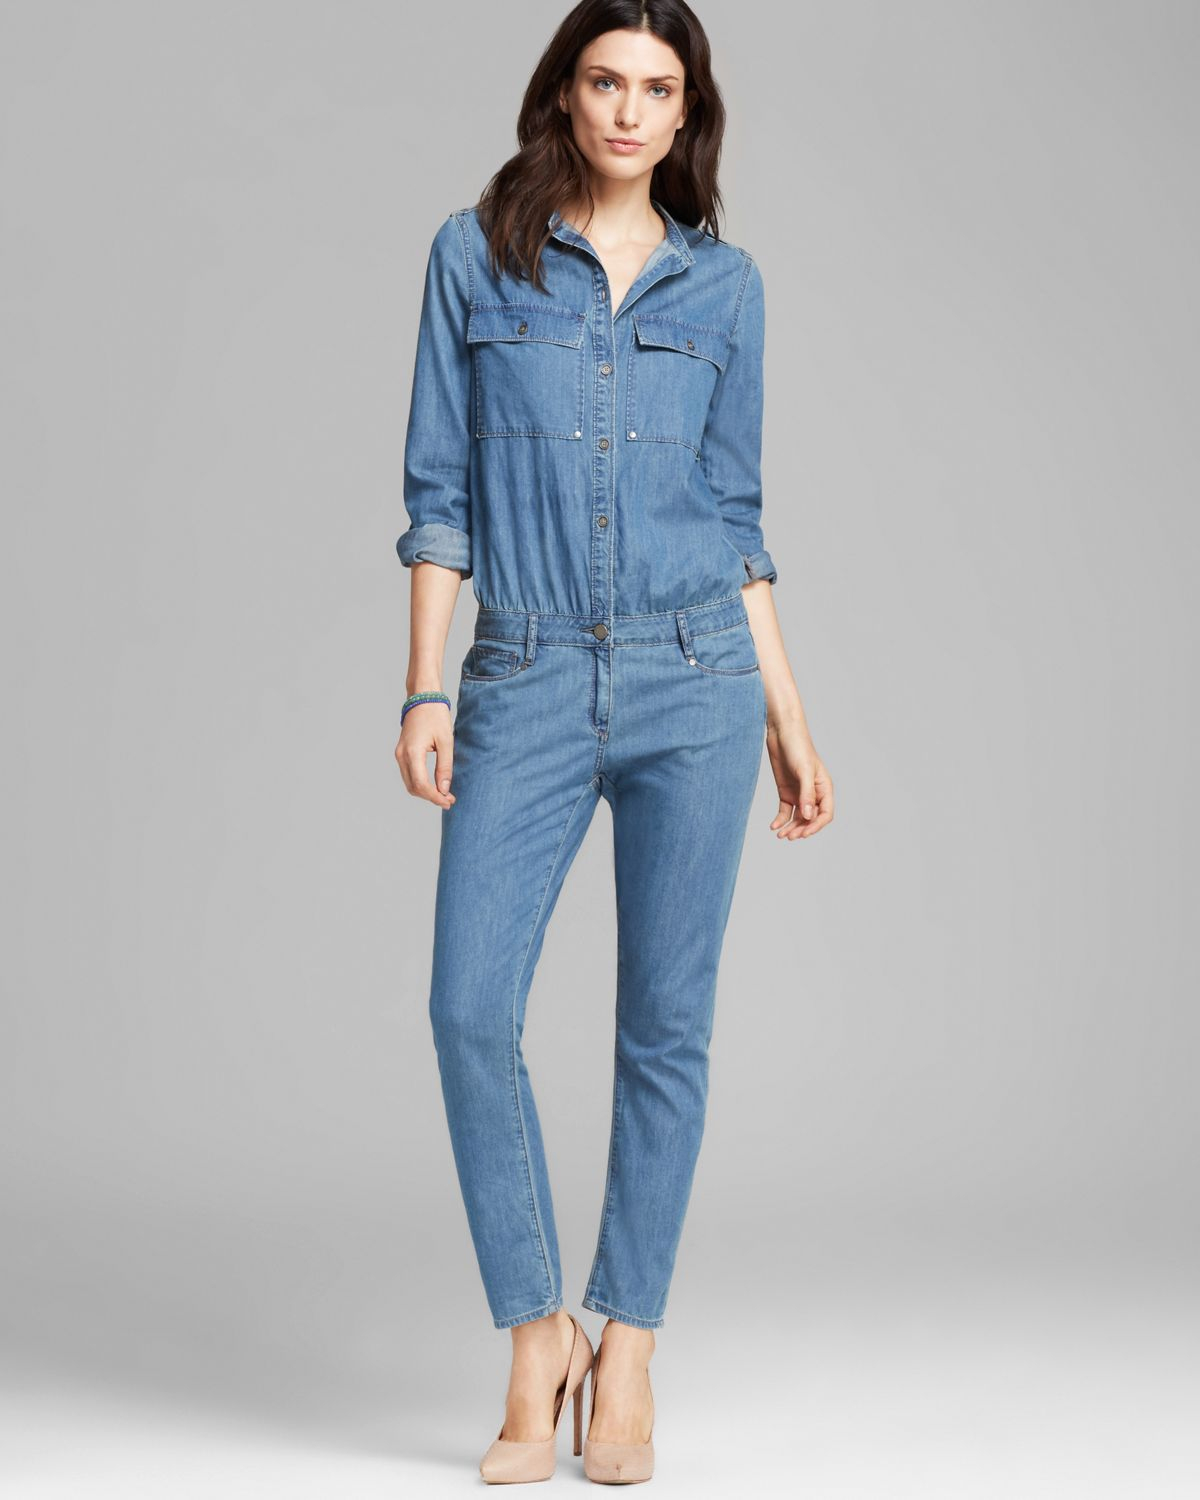 bfc51a8d494f1 Gallery. Previously sold at: Bloomingdale's · Women's Denim Jumpsuits